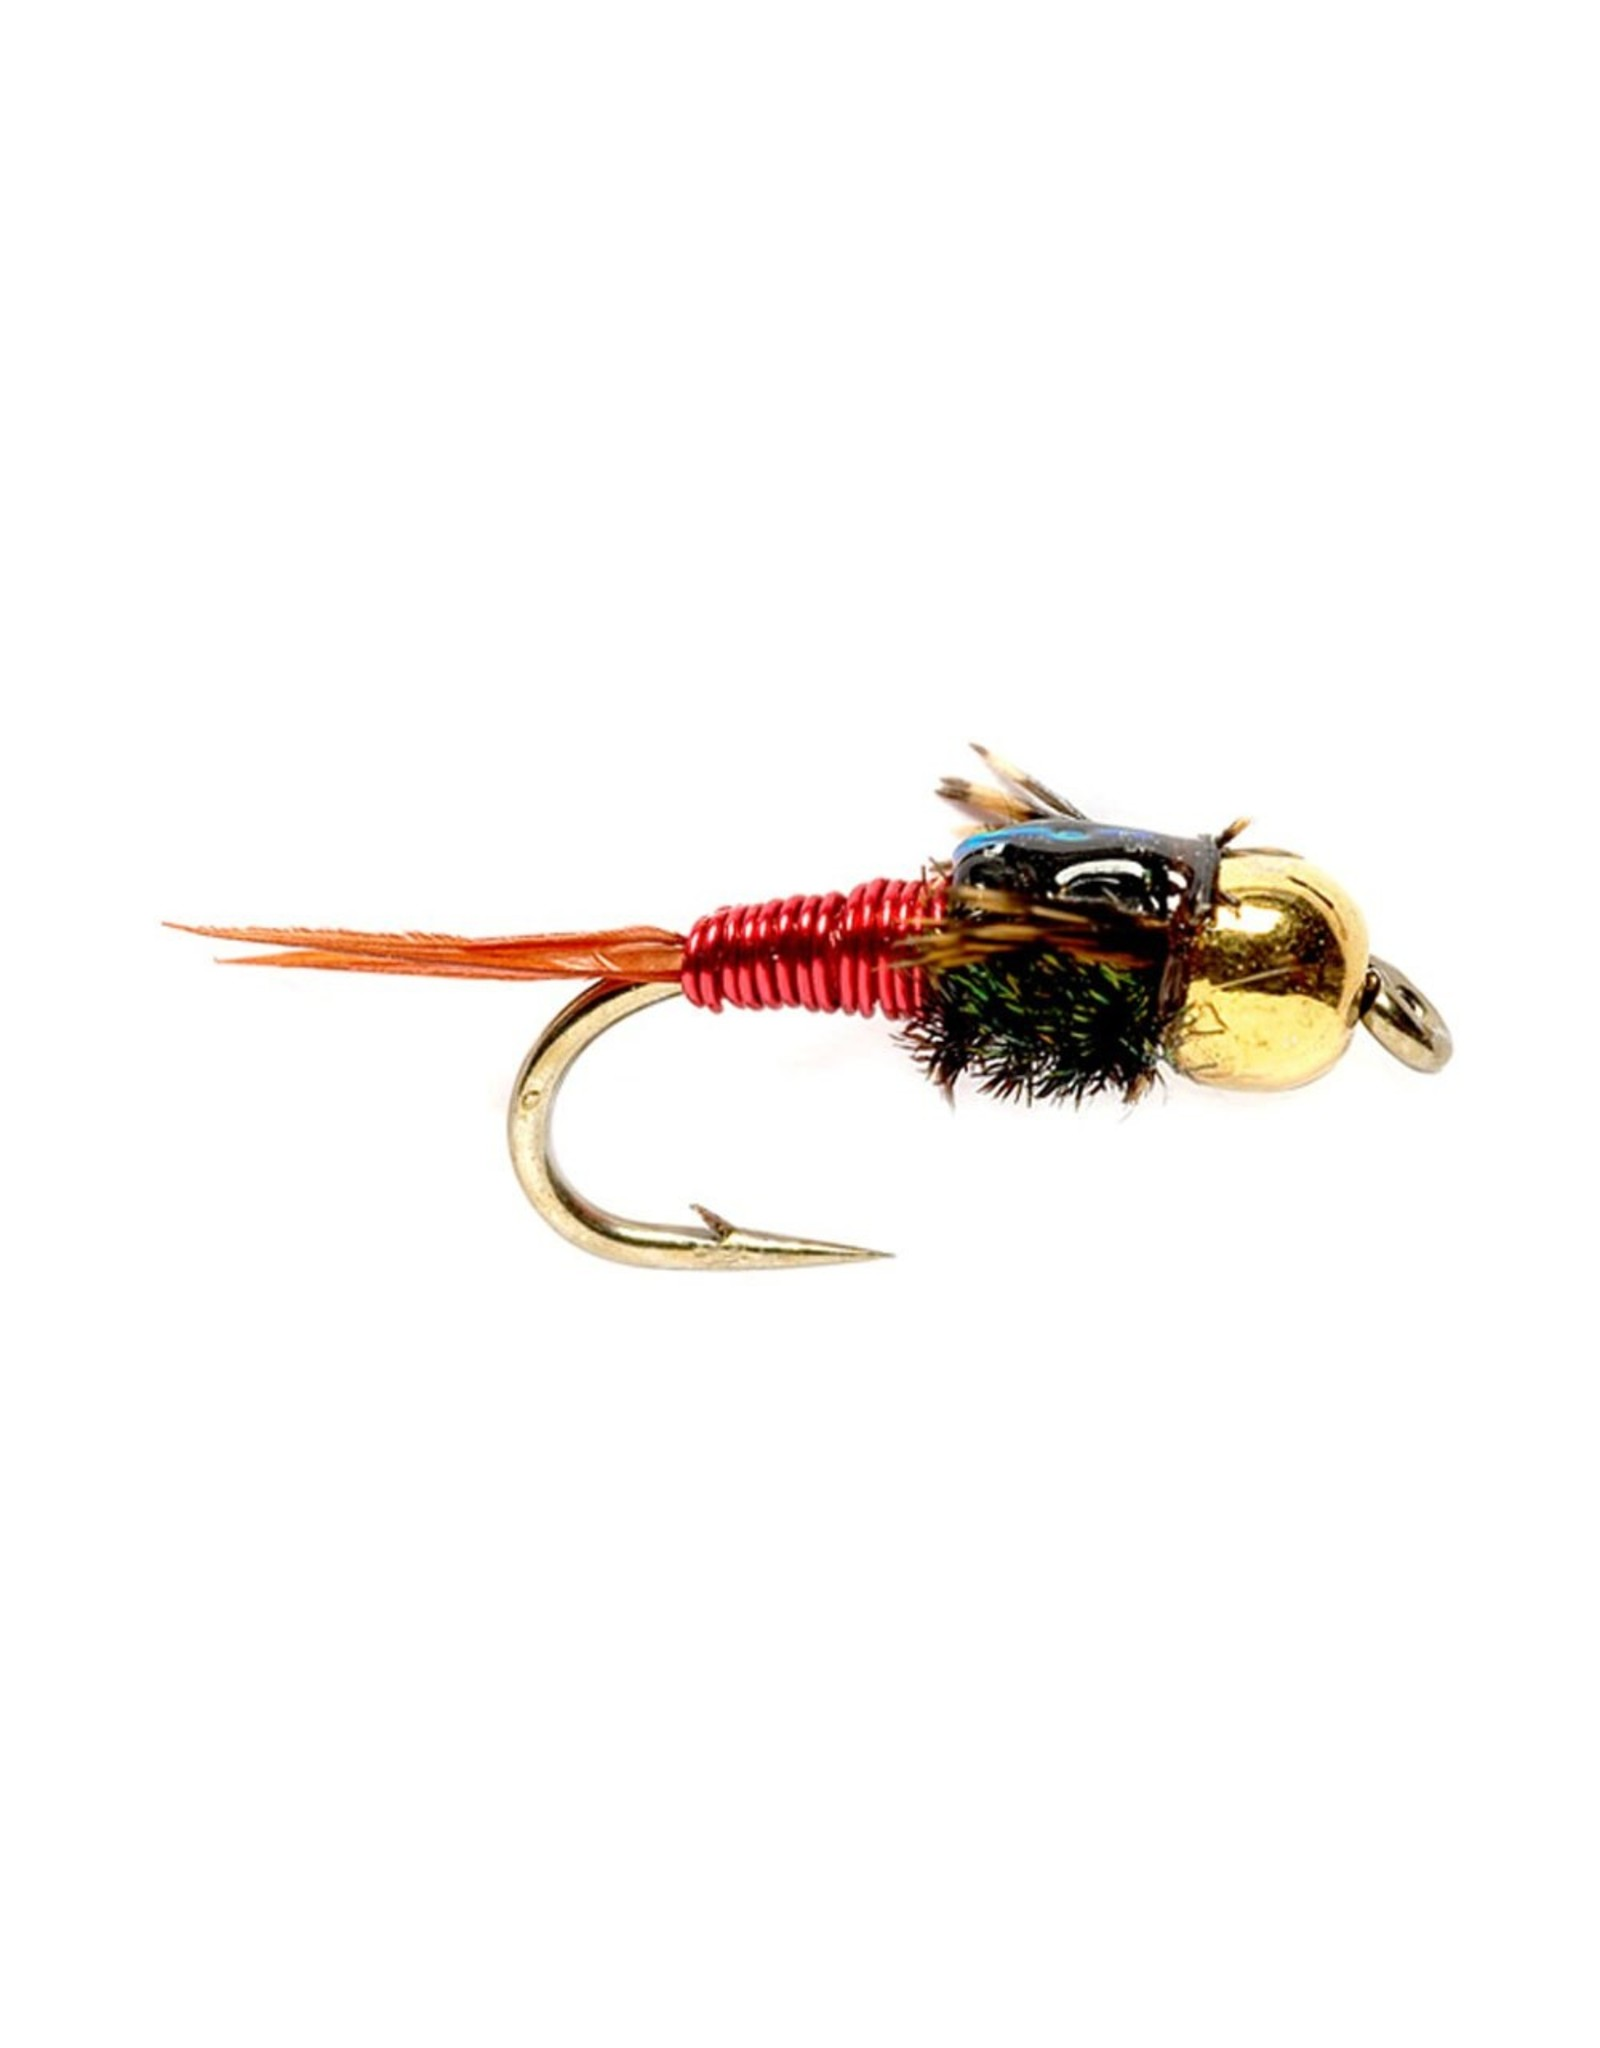 Mountain Angler Copper John